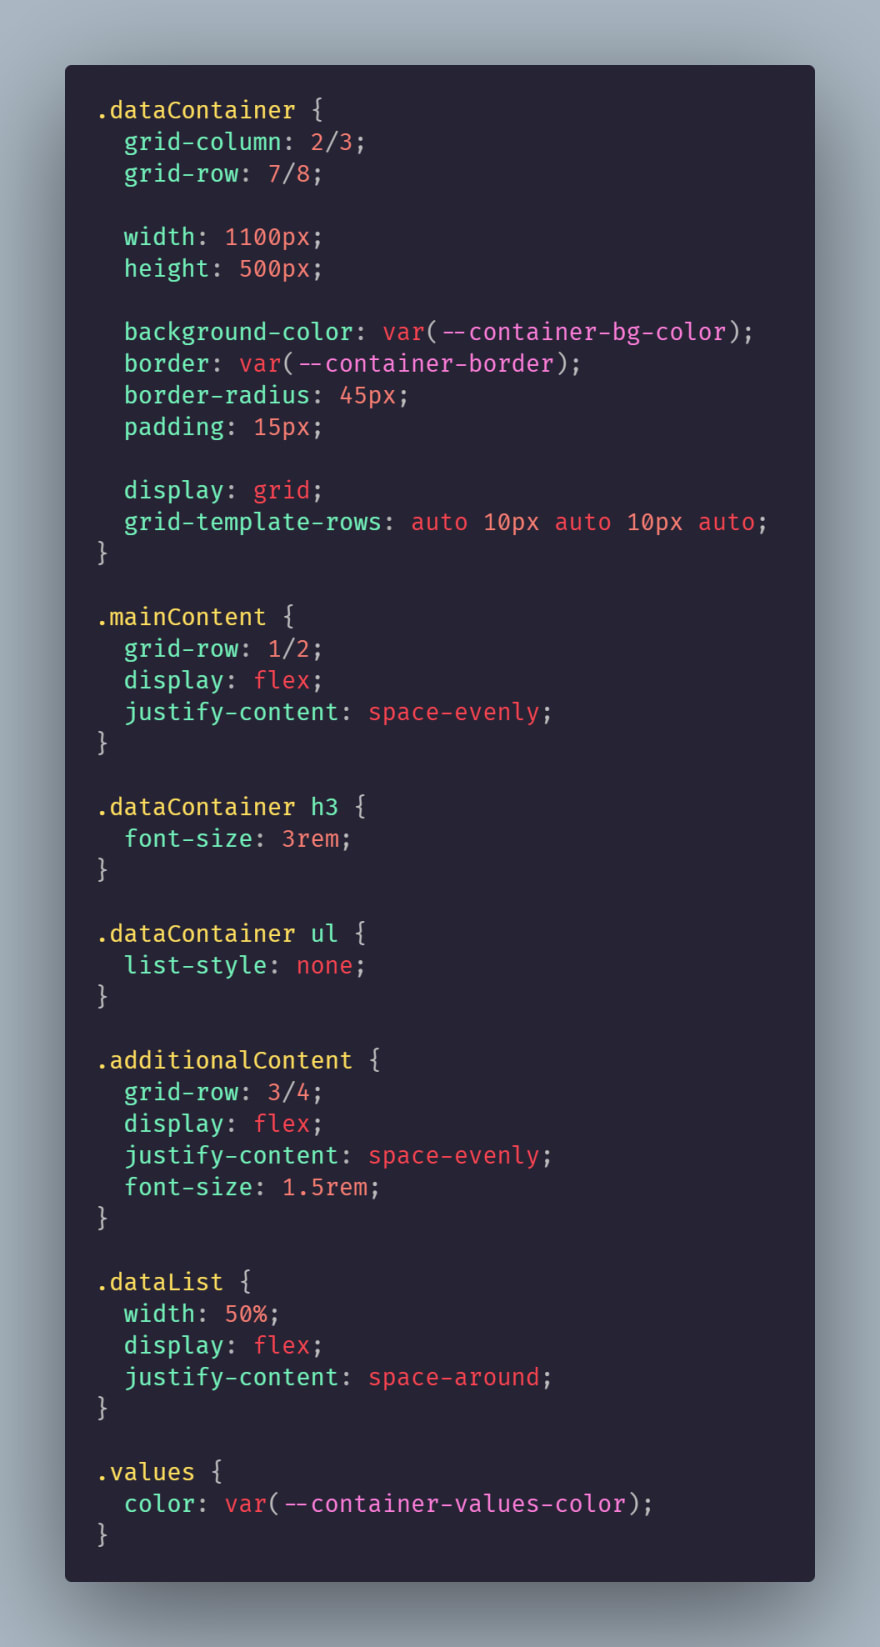 The stylesheet for the CurrentData.js file